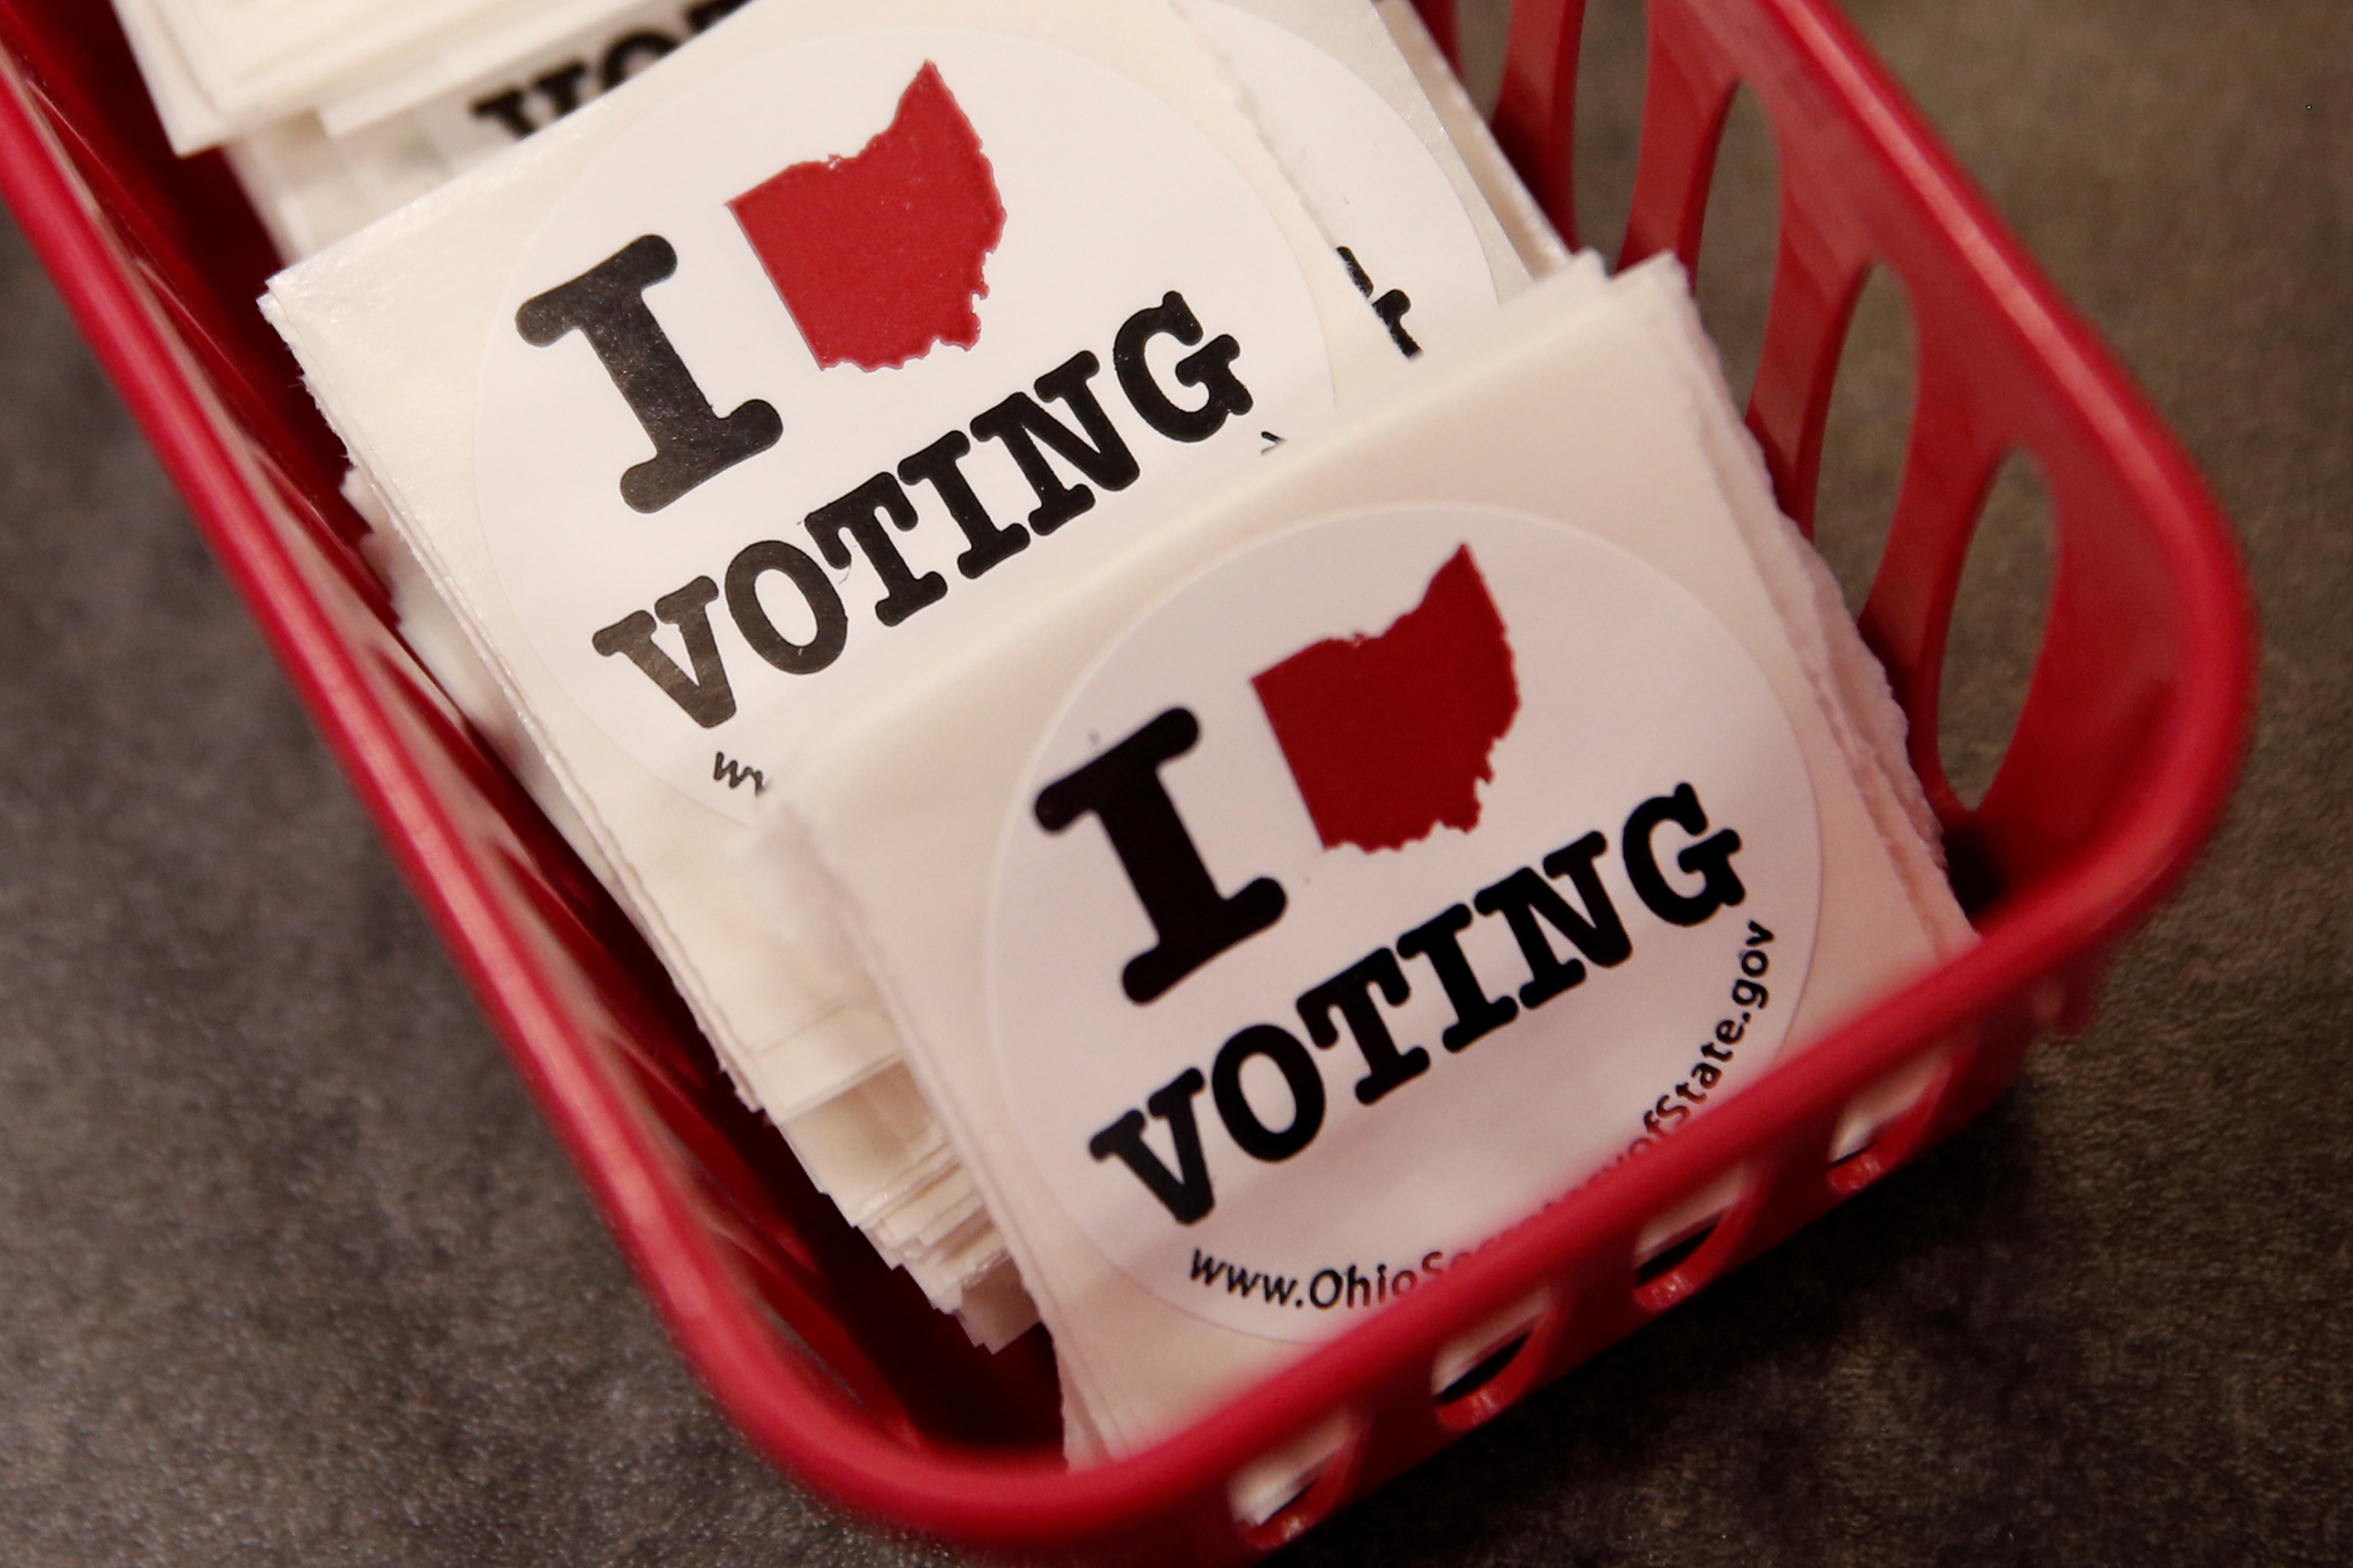 Voting stickers are seen at the Franklin County Board of Elections in Columbus, Ohio U.S., October 28, 2016. REUTERS/Shannon Stapleton/File Photo